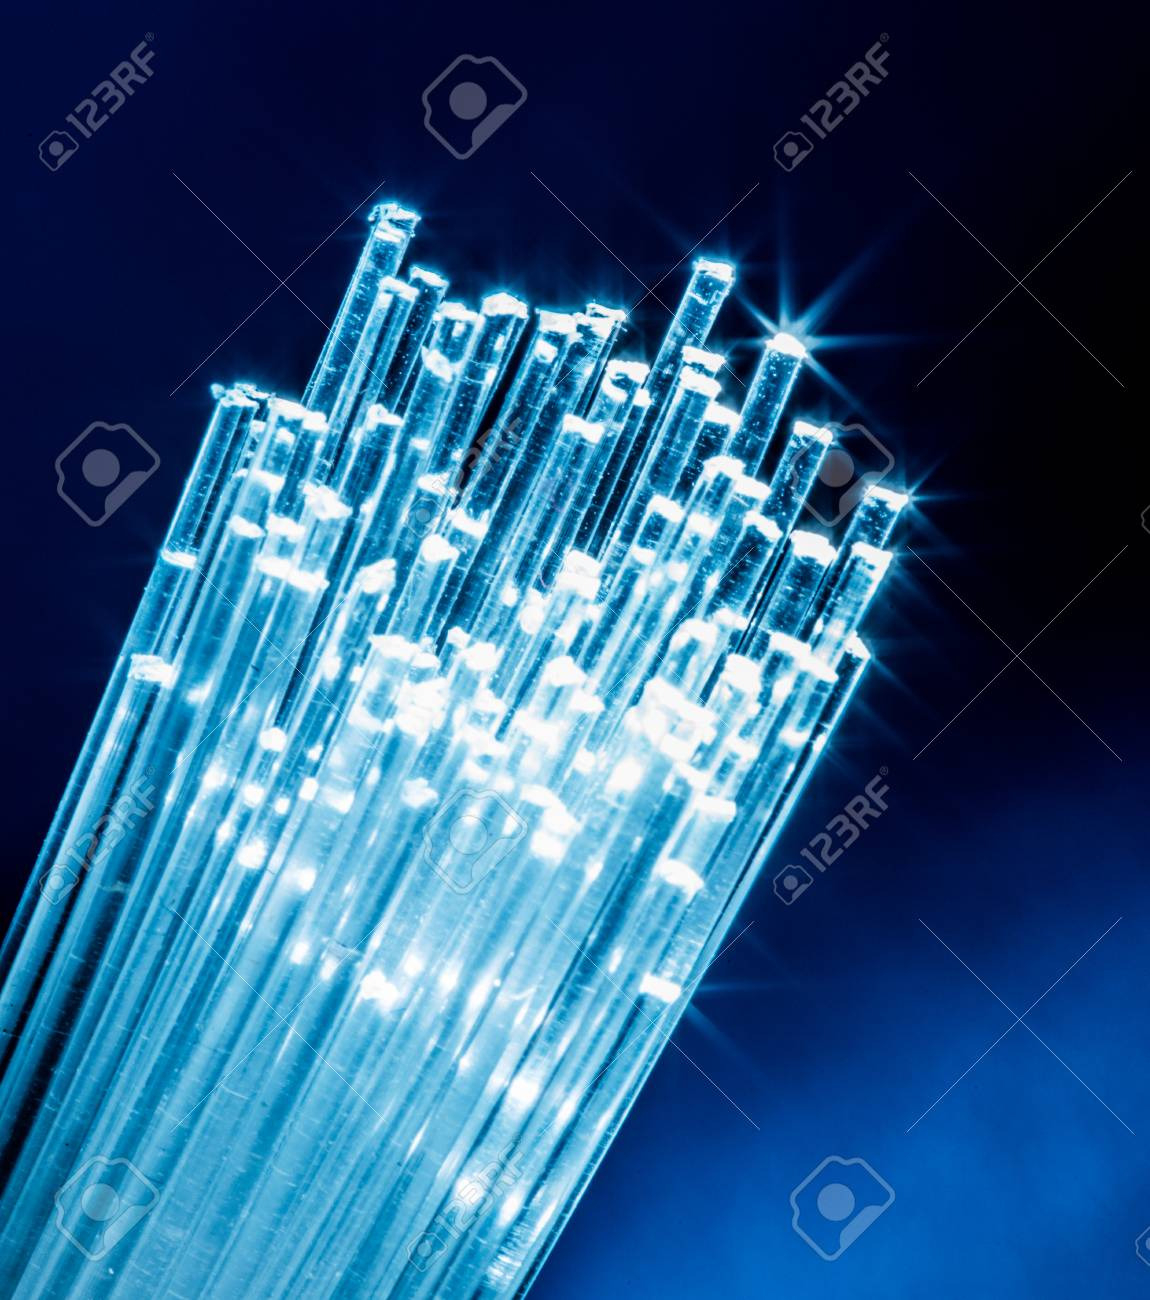 Bundle of optical fibers with lights in the ends. - 121830037